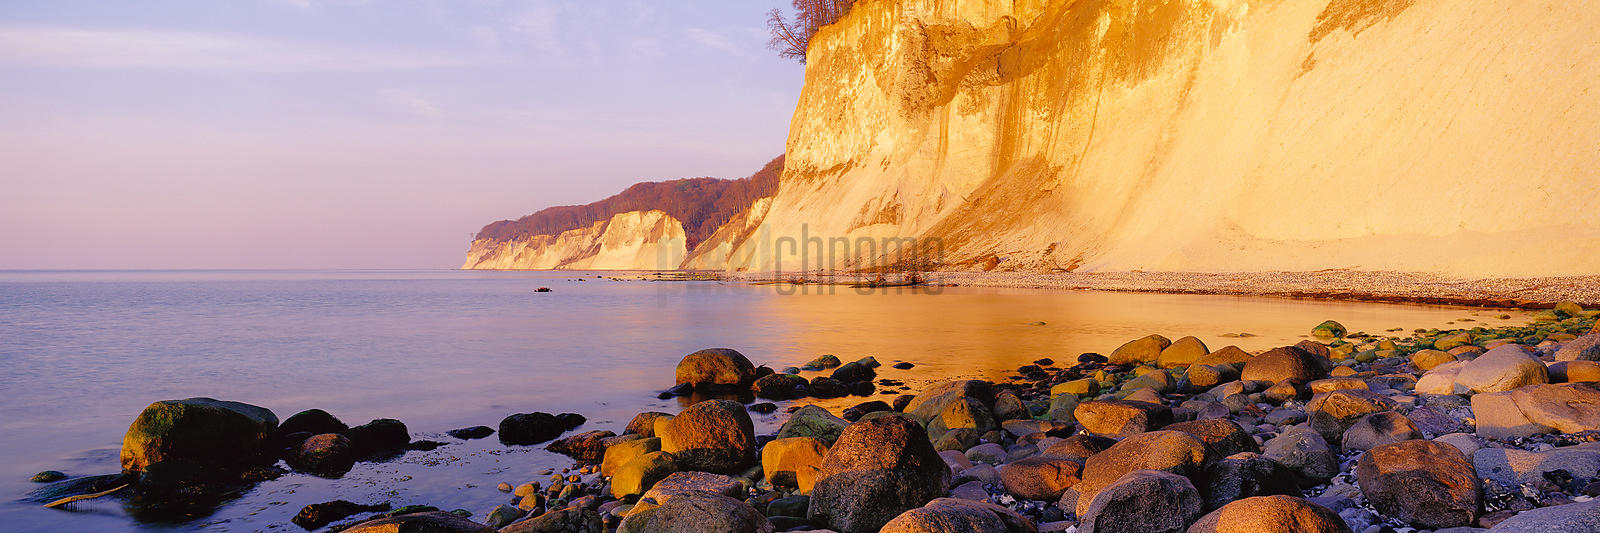 The Chalk Cliffs of Rugen